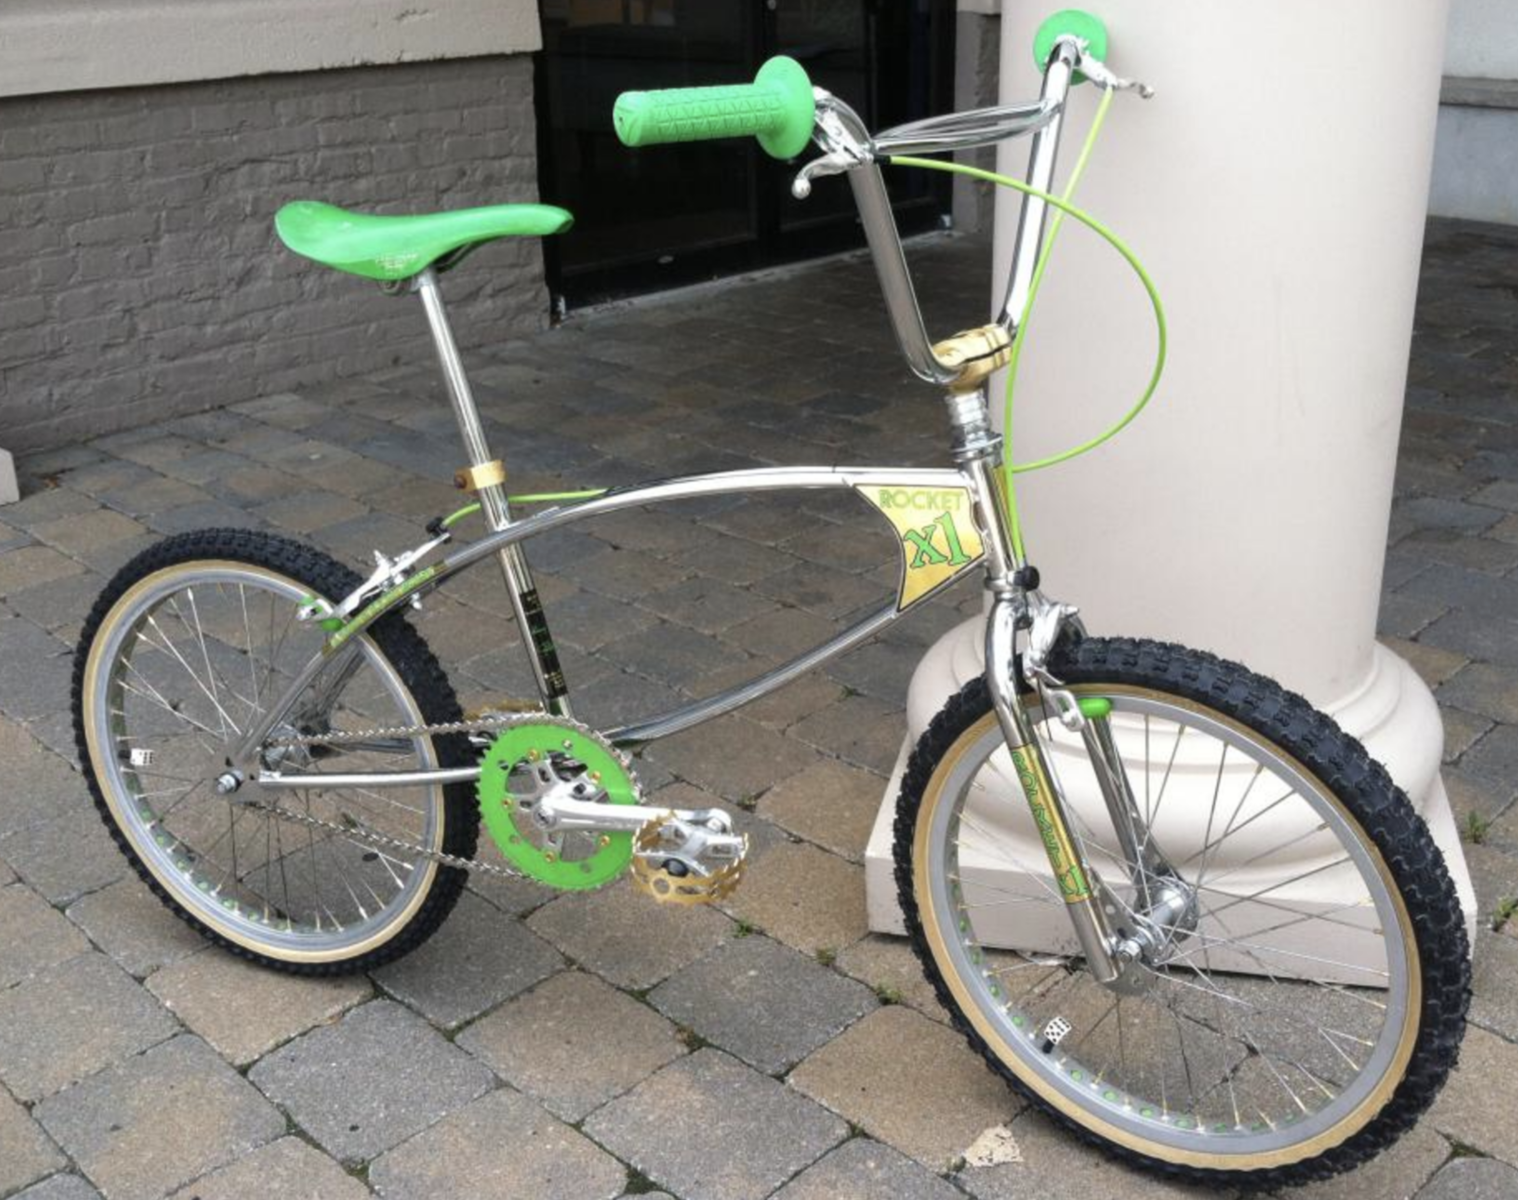 http://uploads.bmxmuseum.com/user-images/37062/screen-shot-2018-05-24-at-11.54.20-am5b06e06f22.png